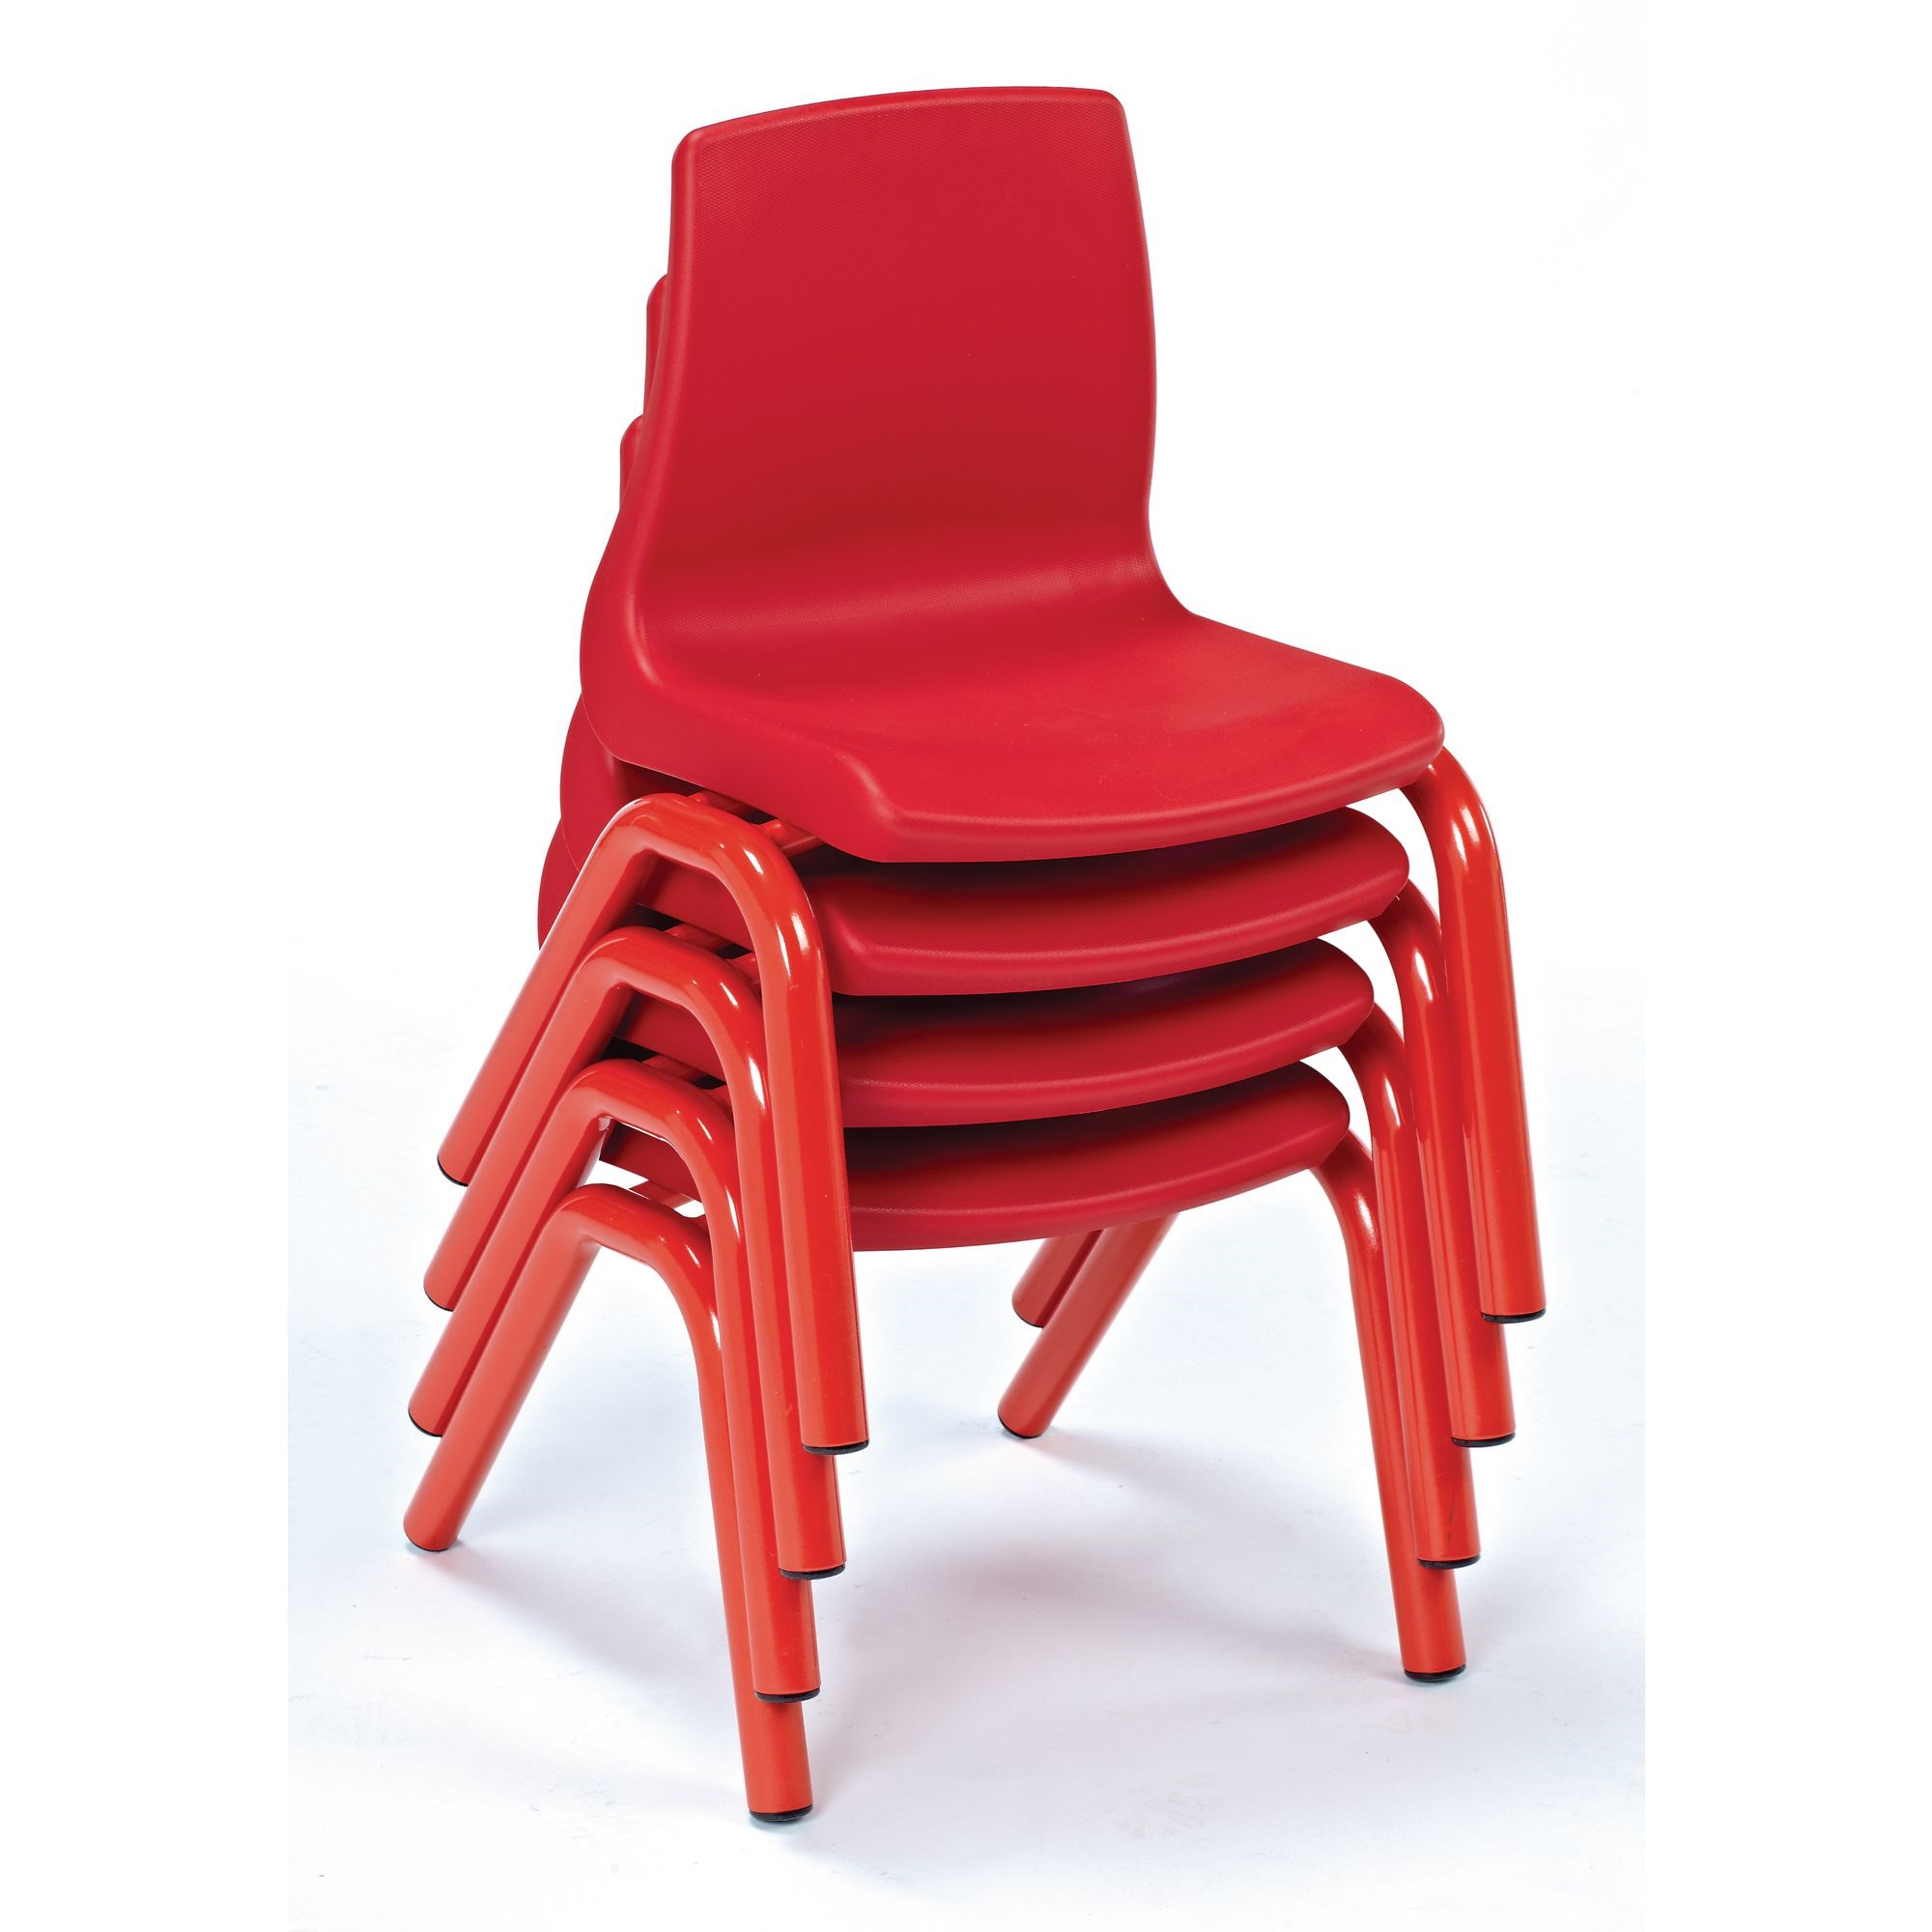 Harlequin Chairs Pre Sch Purp